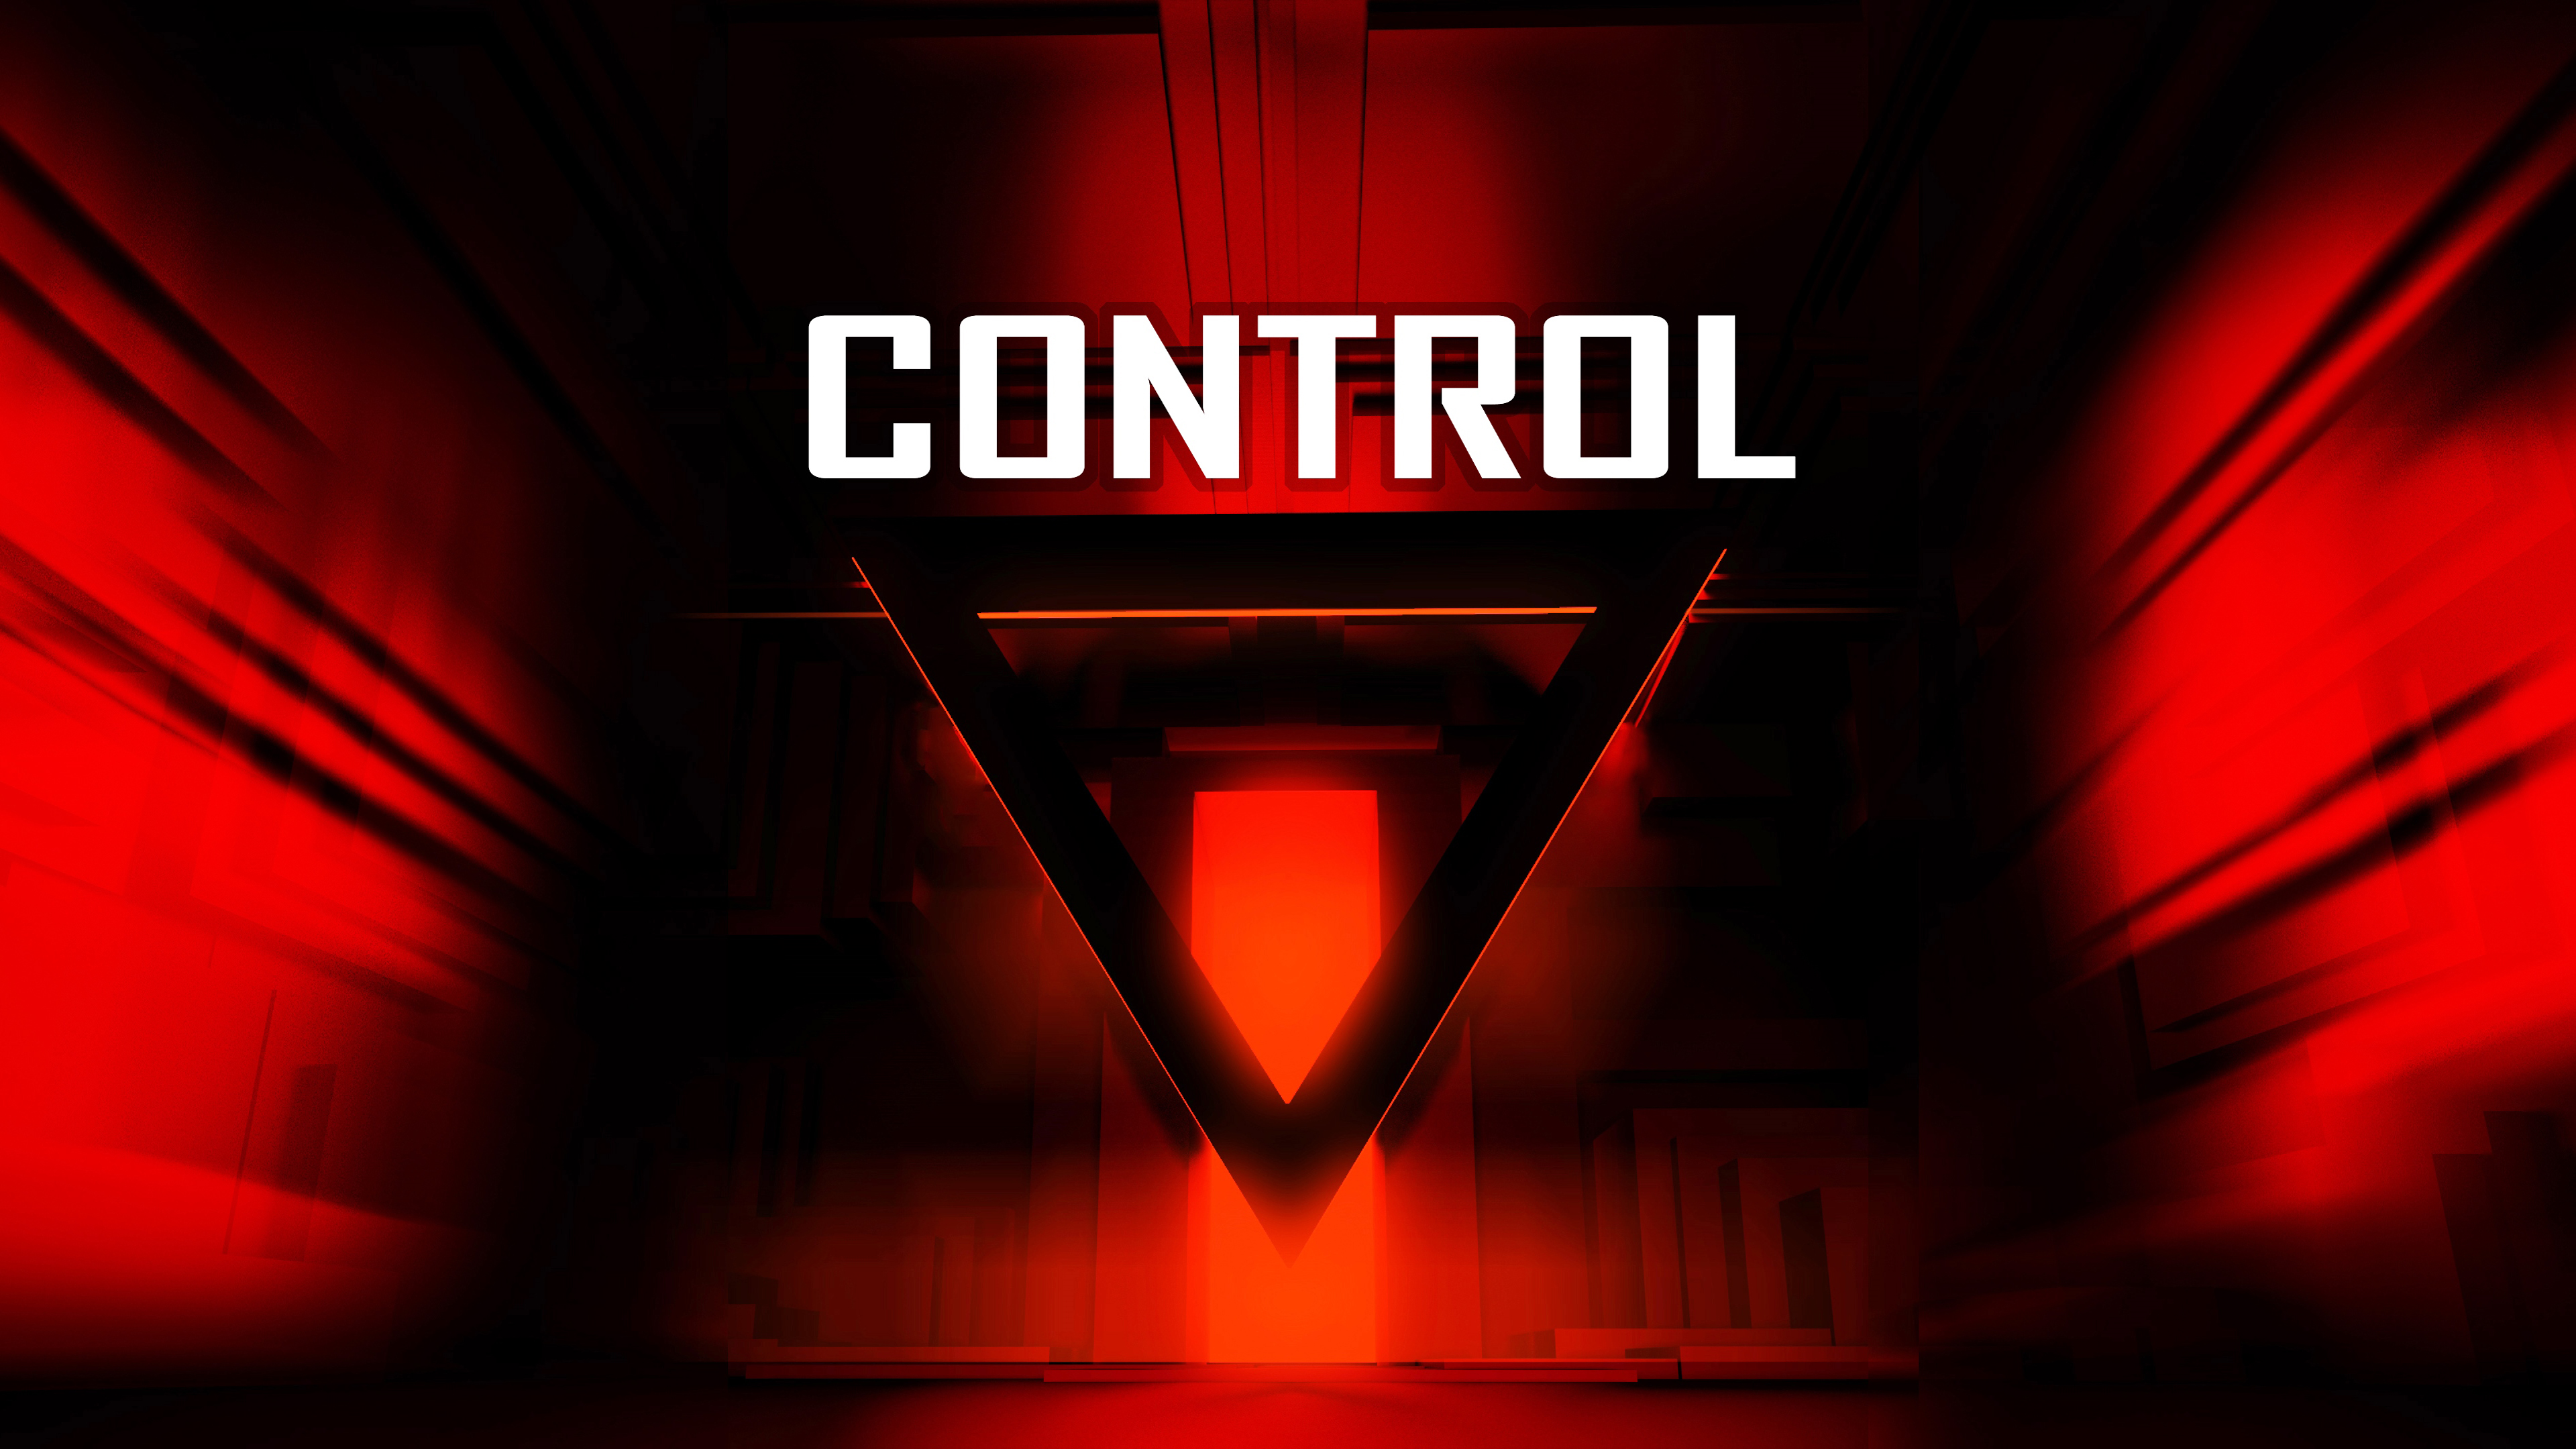 Control 4k Ultra Hd Wallpaper Background Image 3840x2160